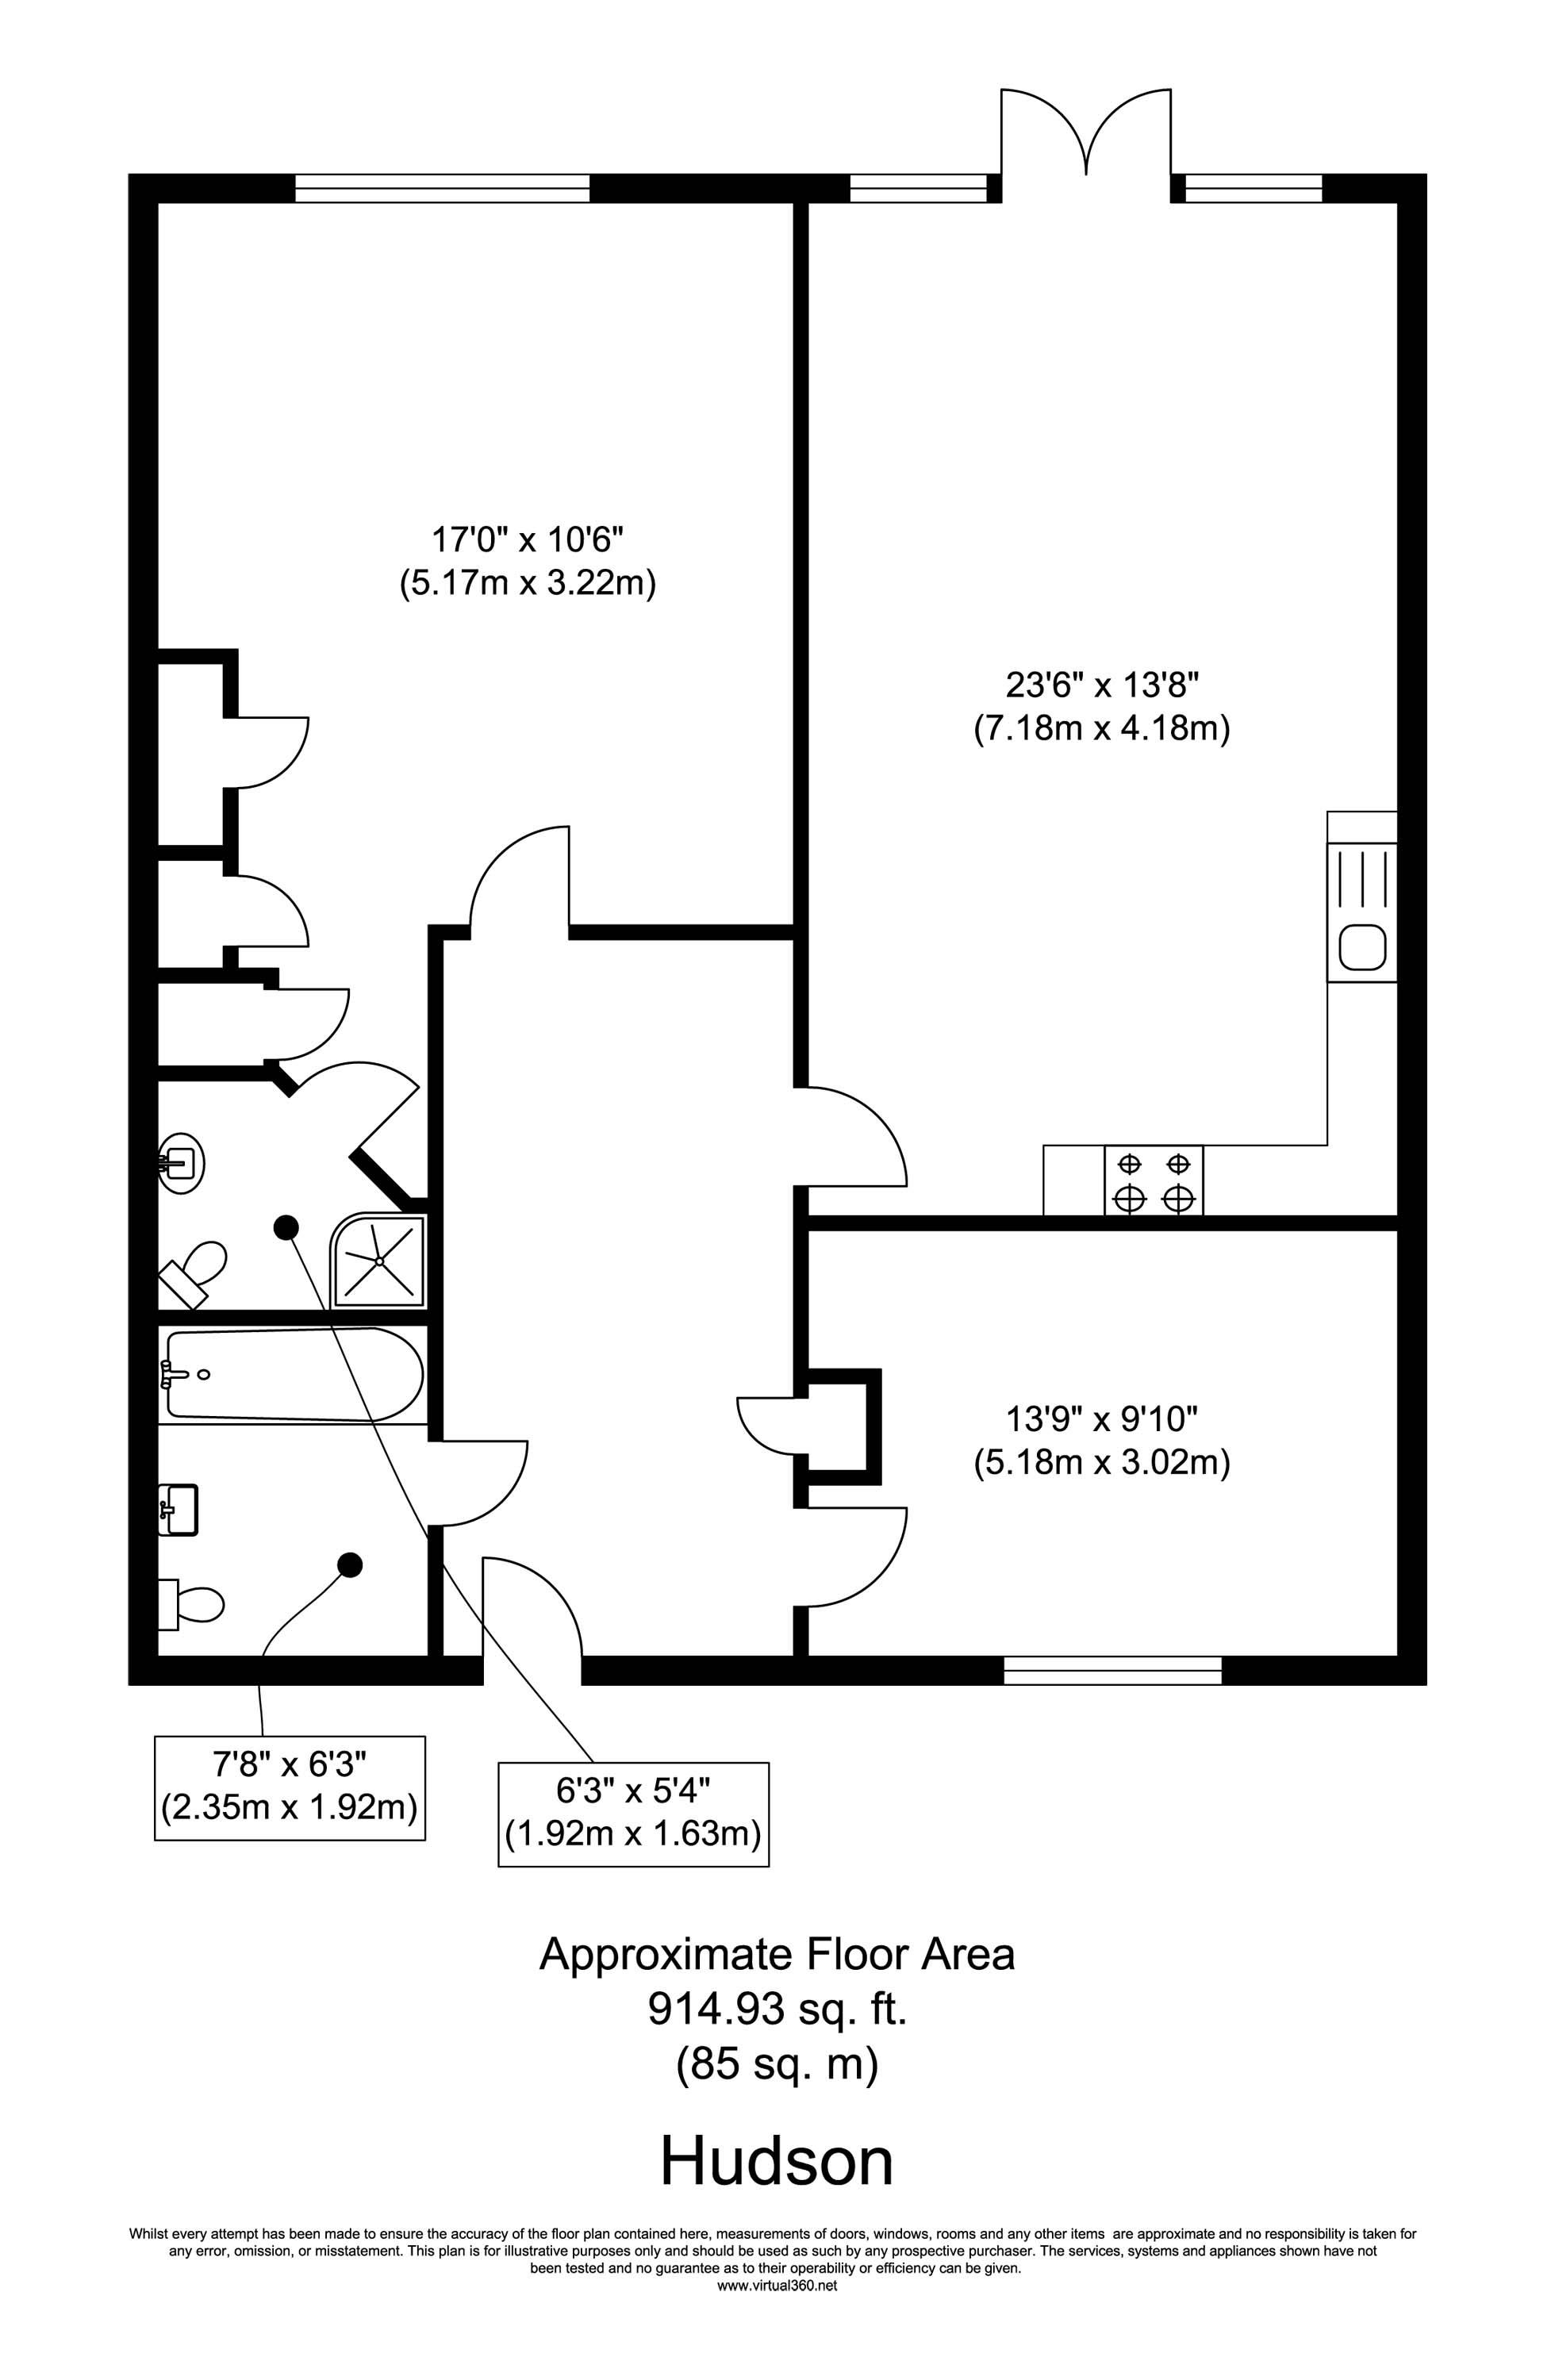 Floorplan for the property 2 bed Apartment for sale in Chicksand Street, E1 - 1